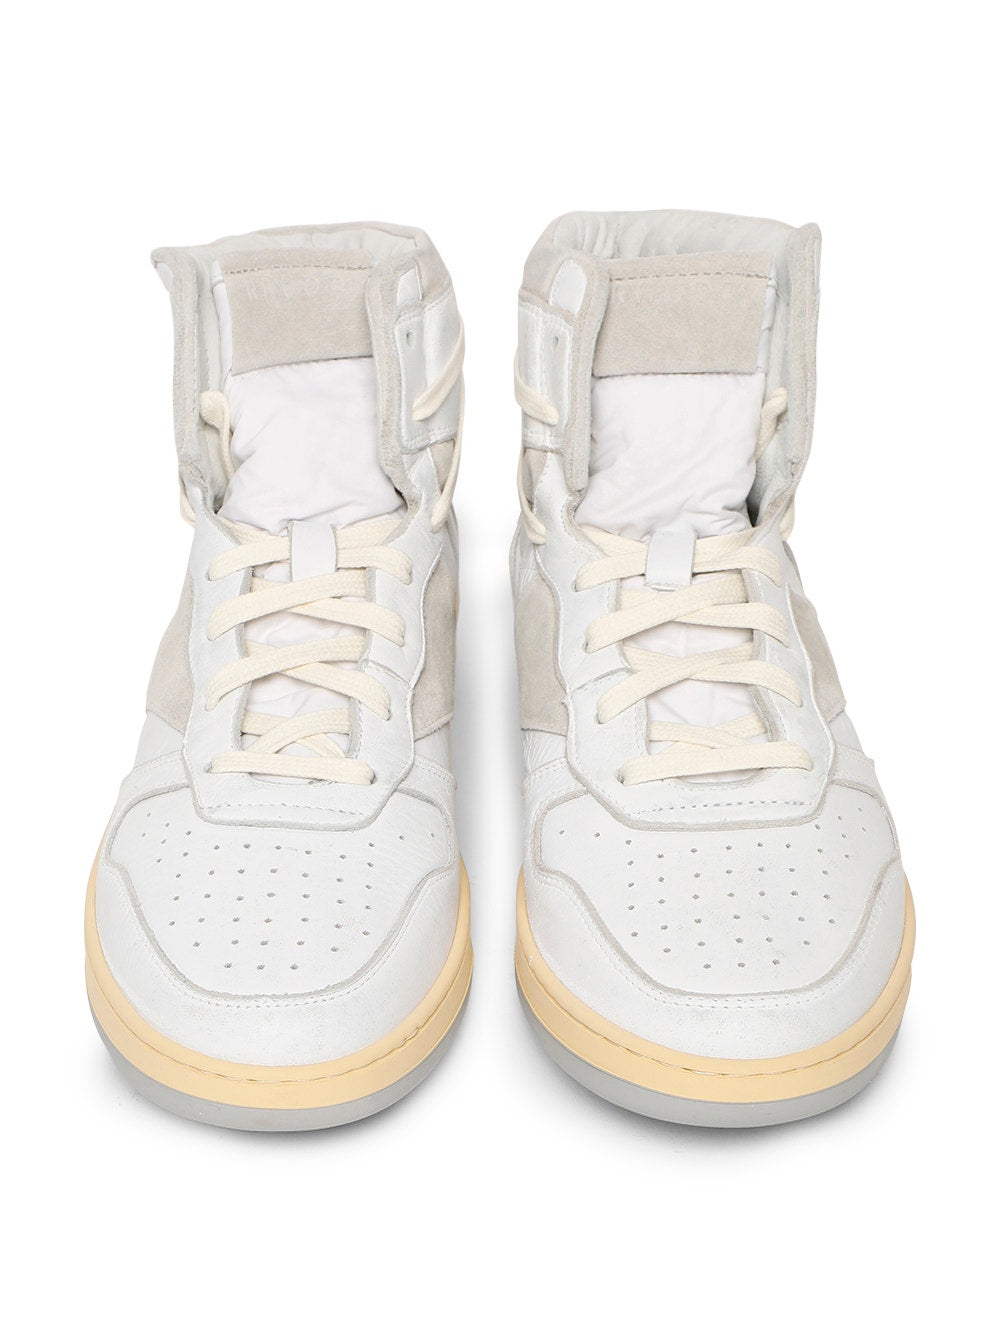 White & Gray Rhecess High Top Sneakers